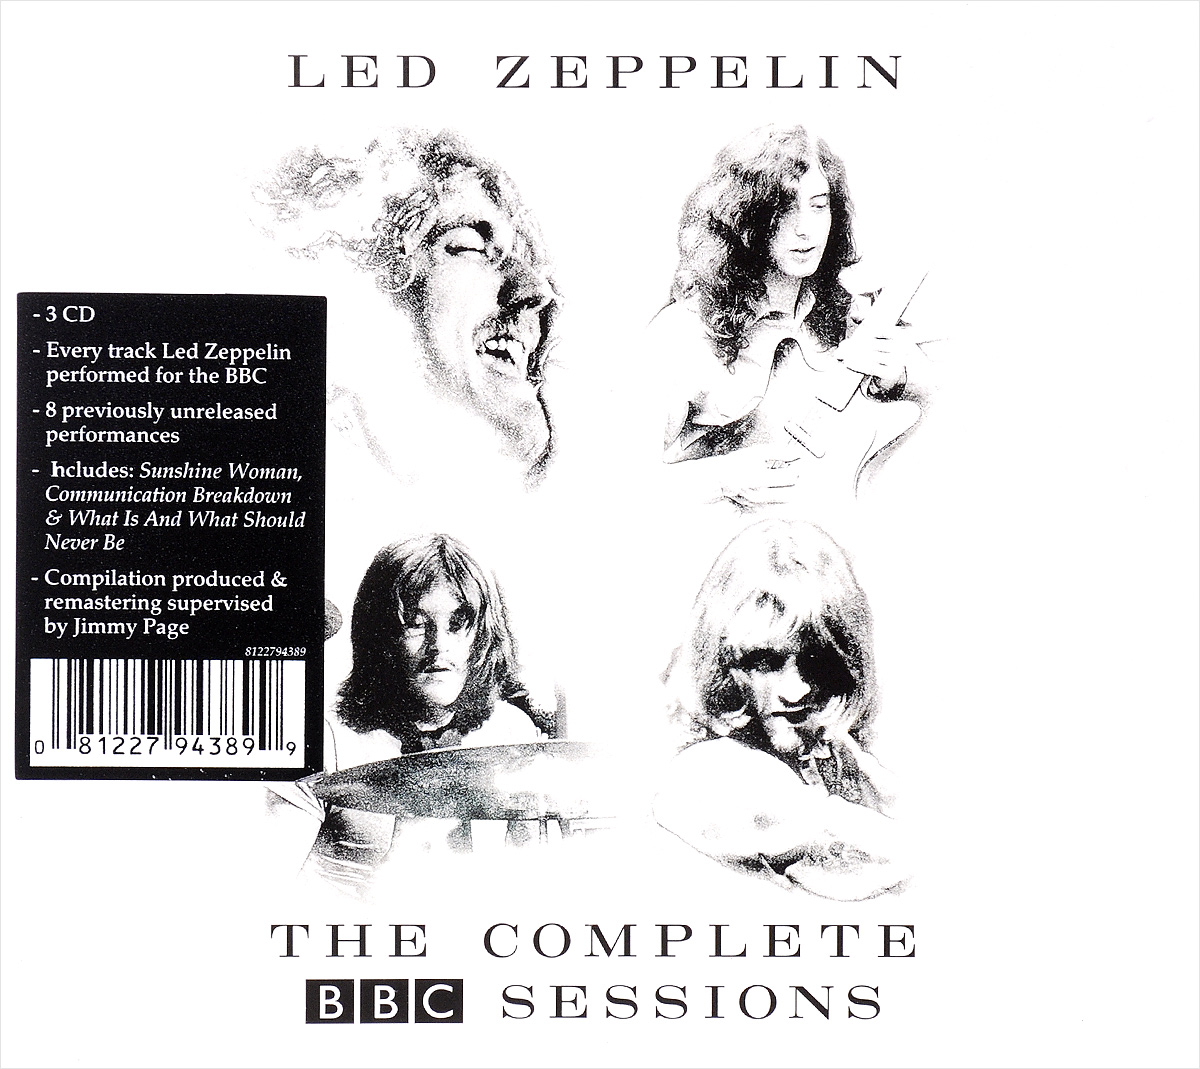 Led Zeppelin Led Zeppelin. The Complete BBC Sessions (3 CD)